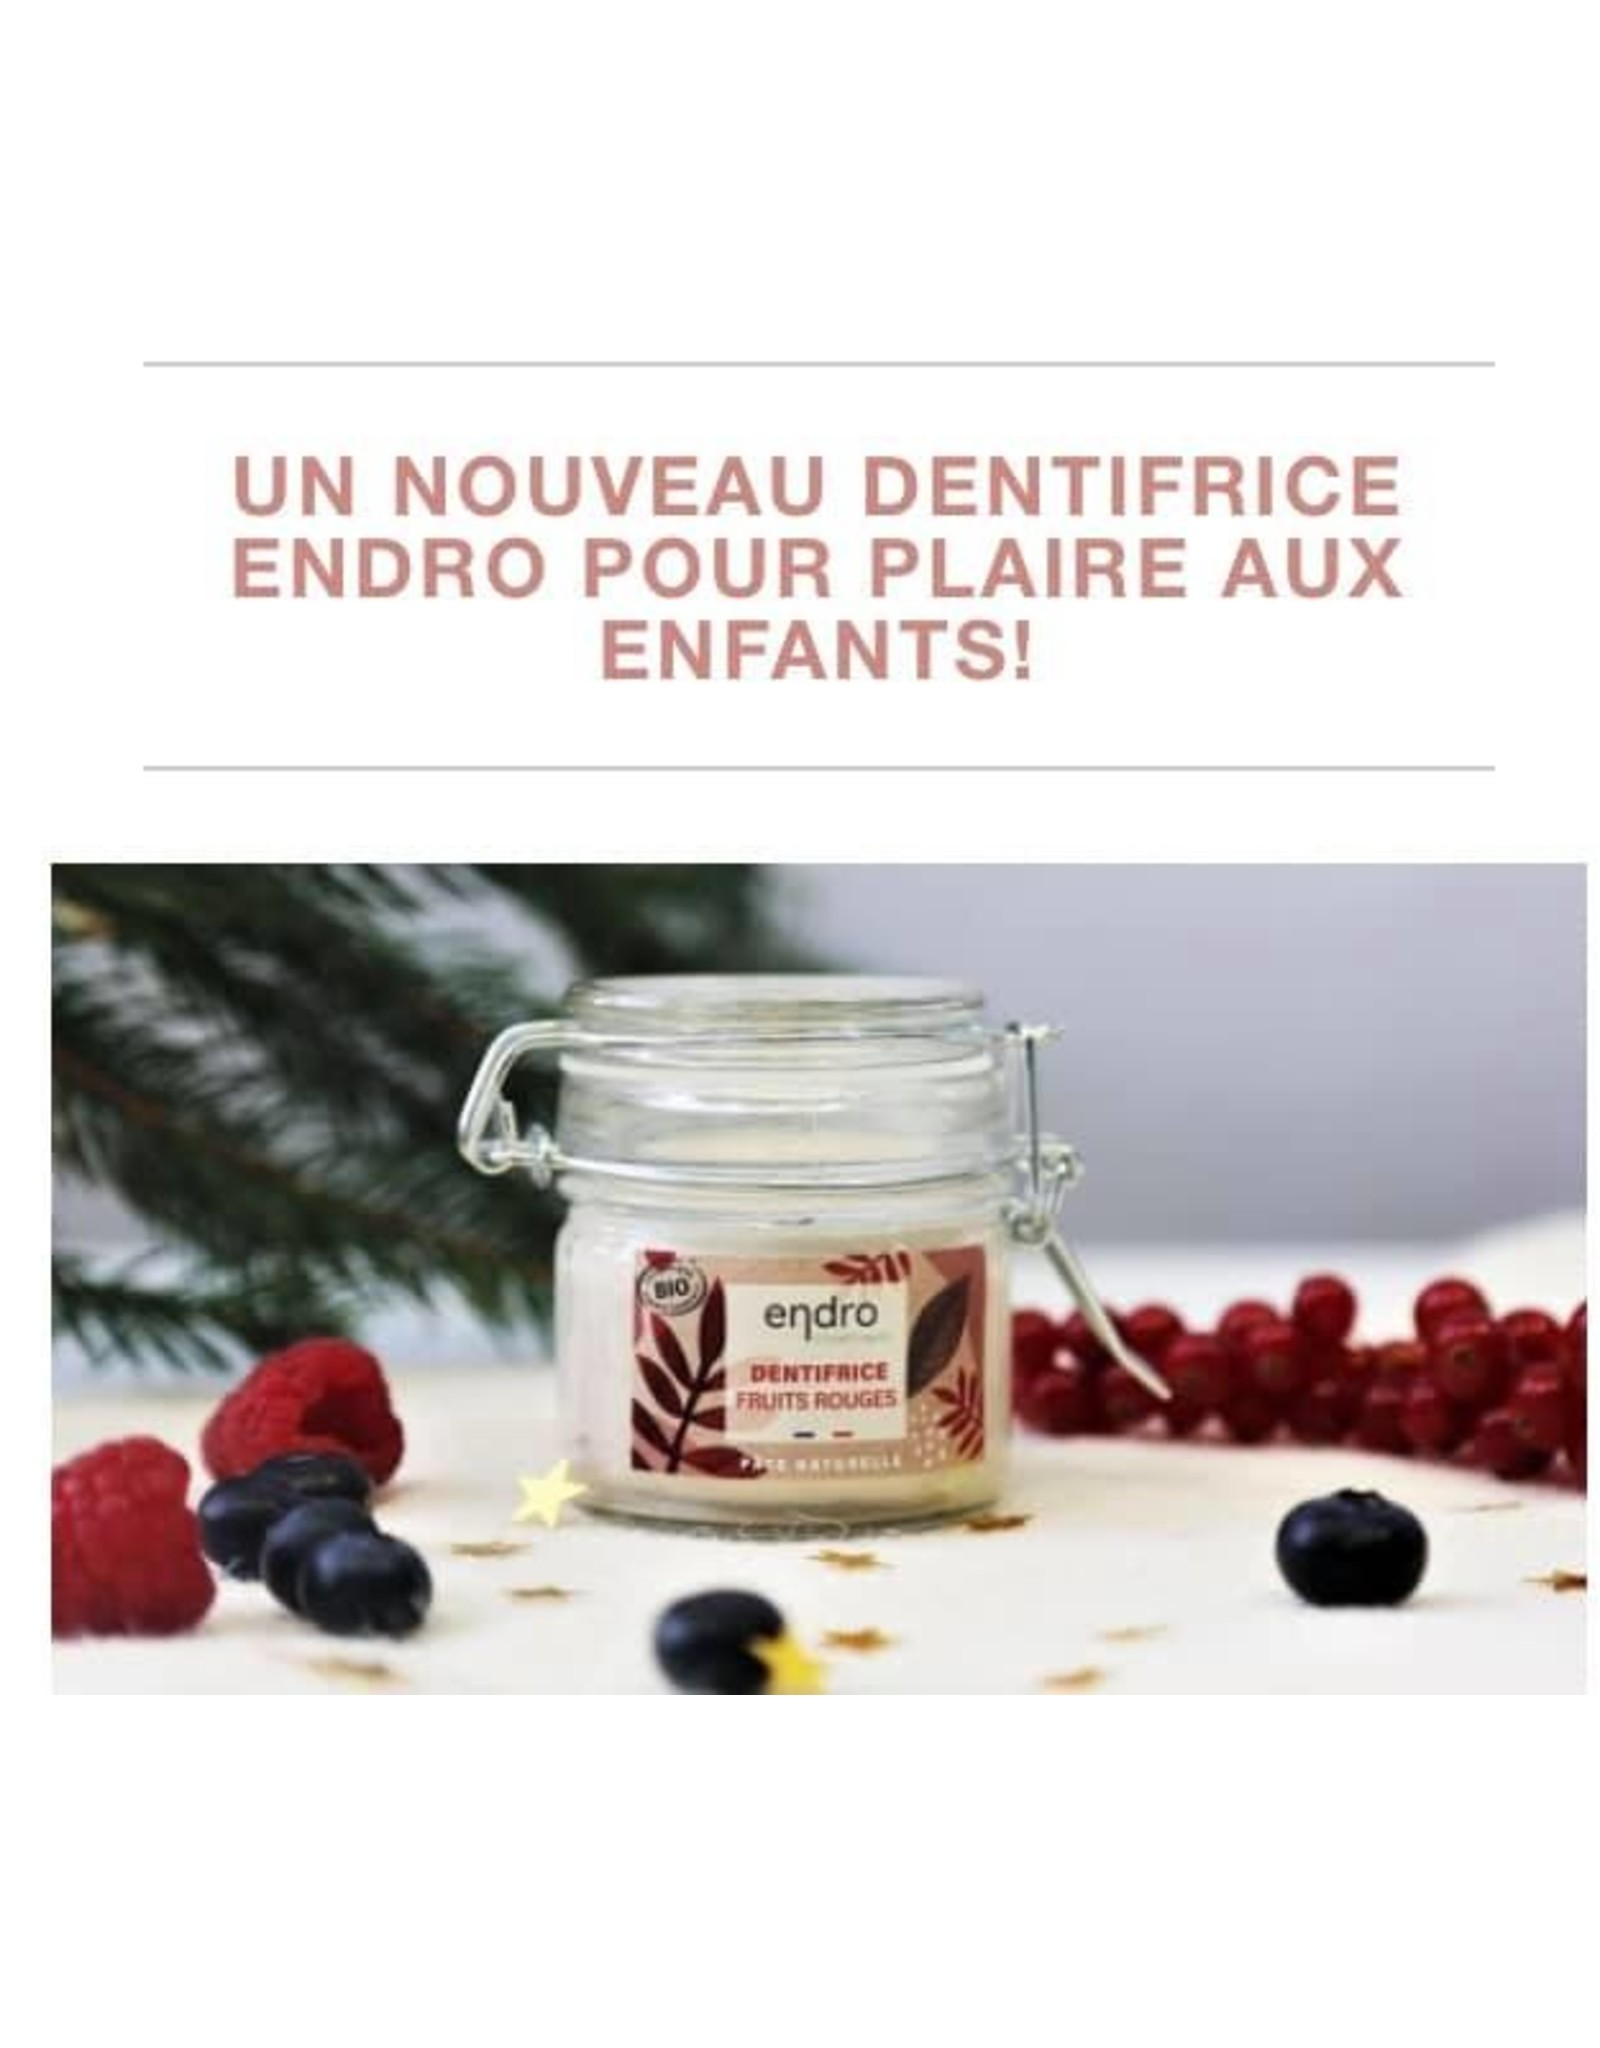 ENDRO Dentifrice aux fruits rouges